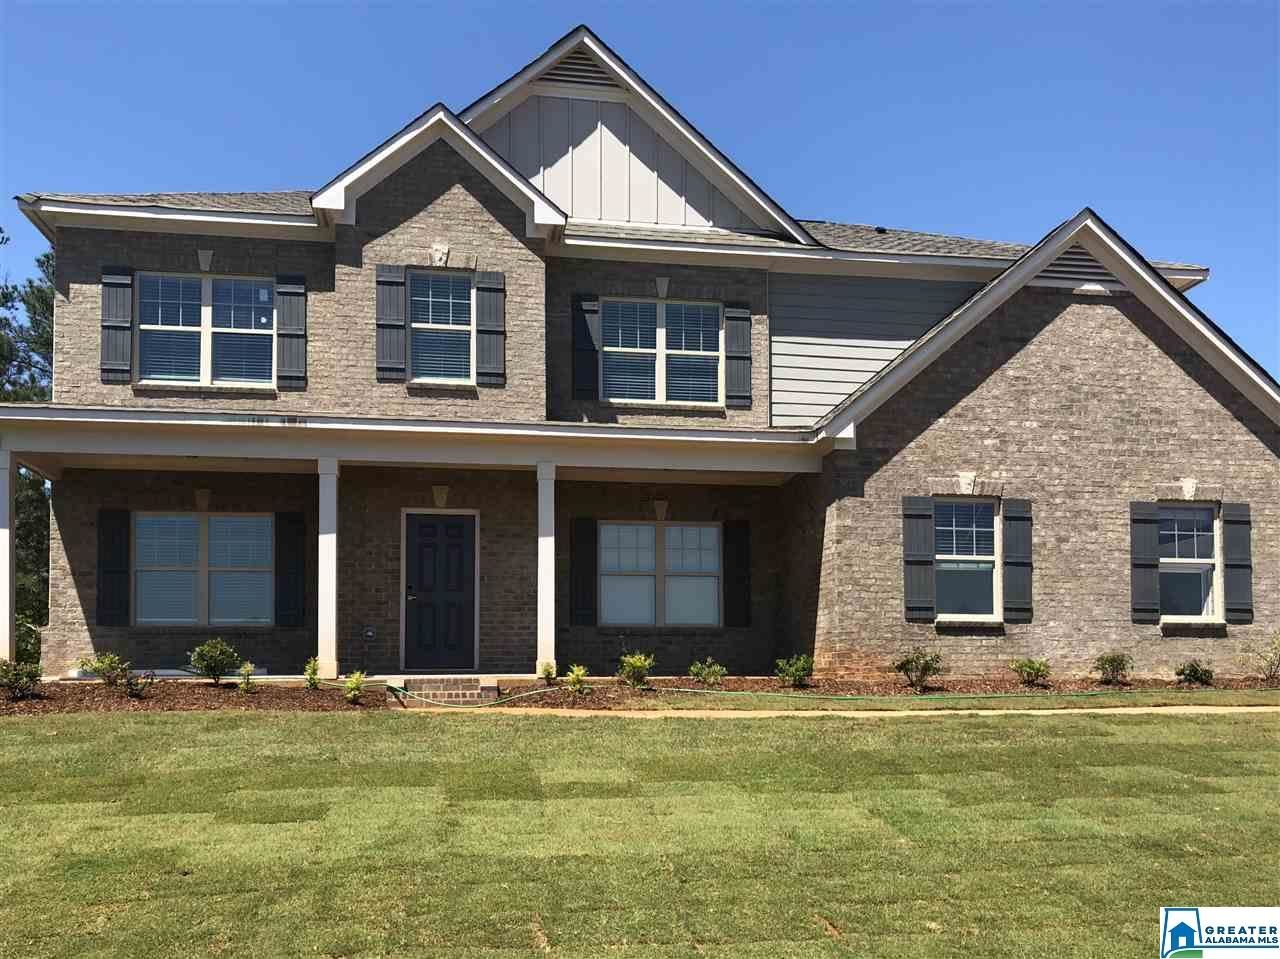 650 LAKERIDGE DR, Trussville, AL 35173 - MLS#: 868634